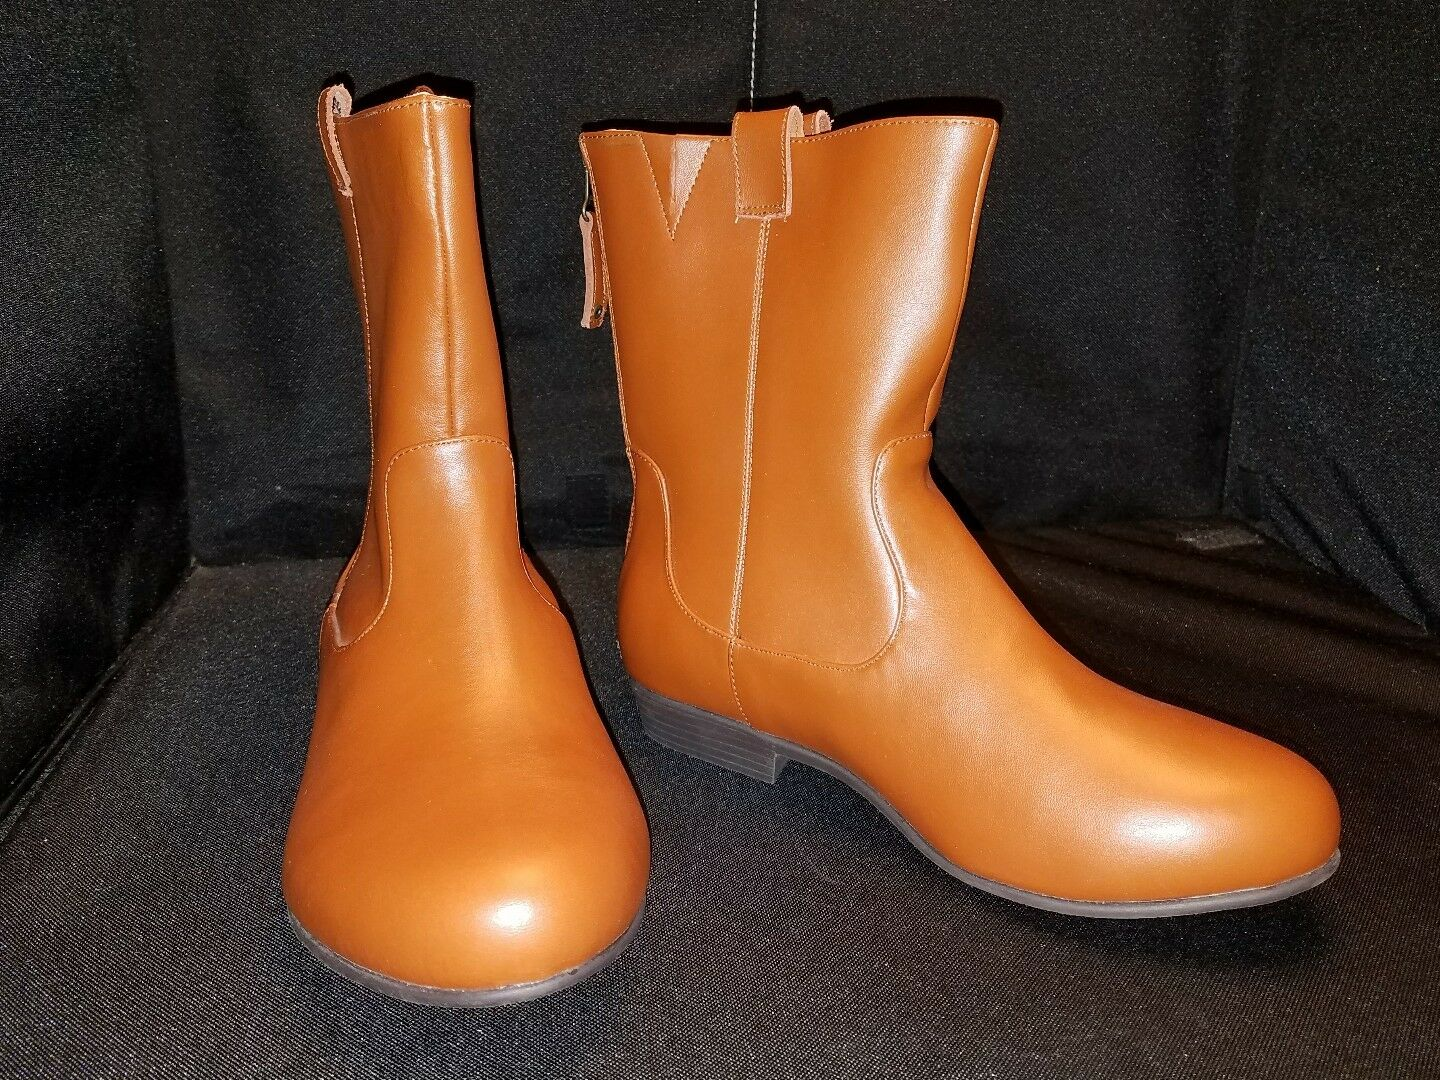 NWOB~ ComfortView ~8.5WW~ Bootie Caramel Leather Back Zippered Mid Calf BOOTS